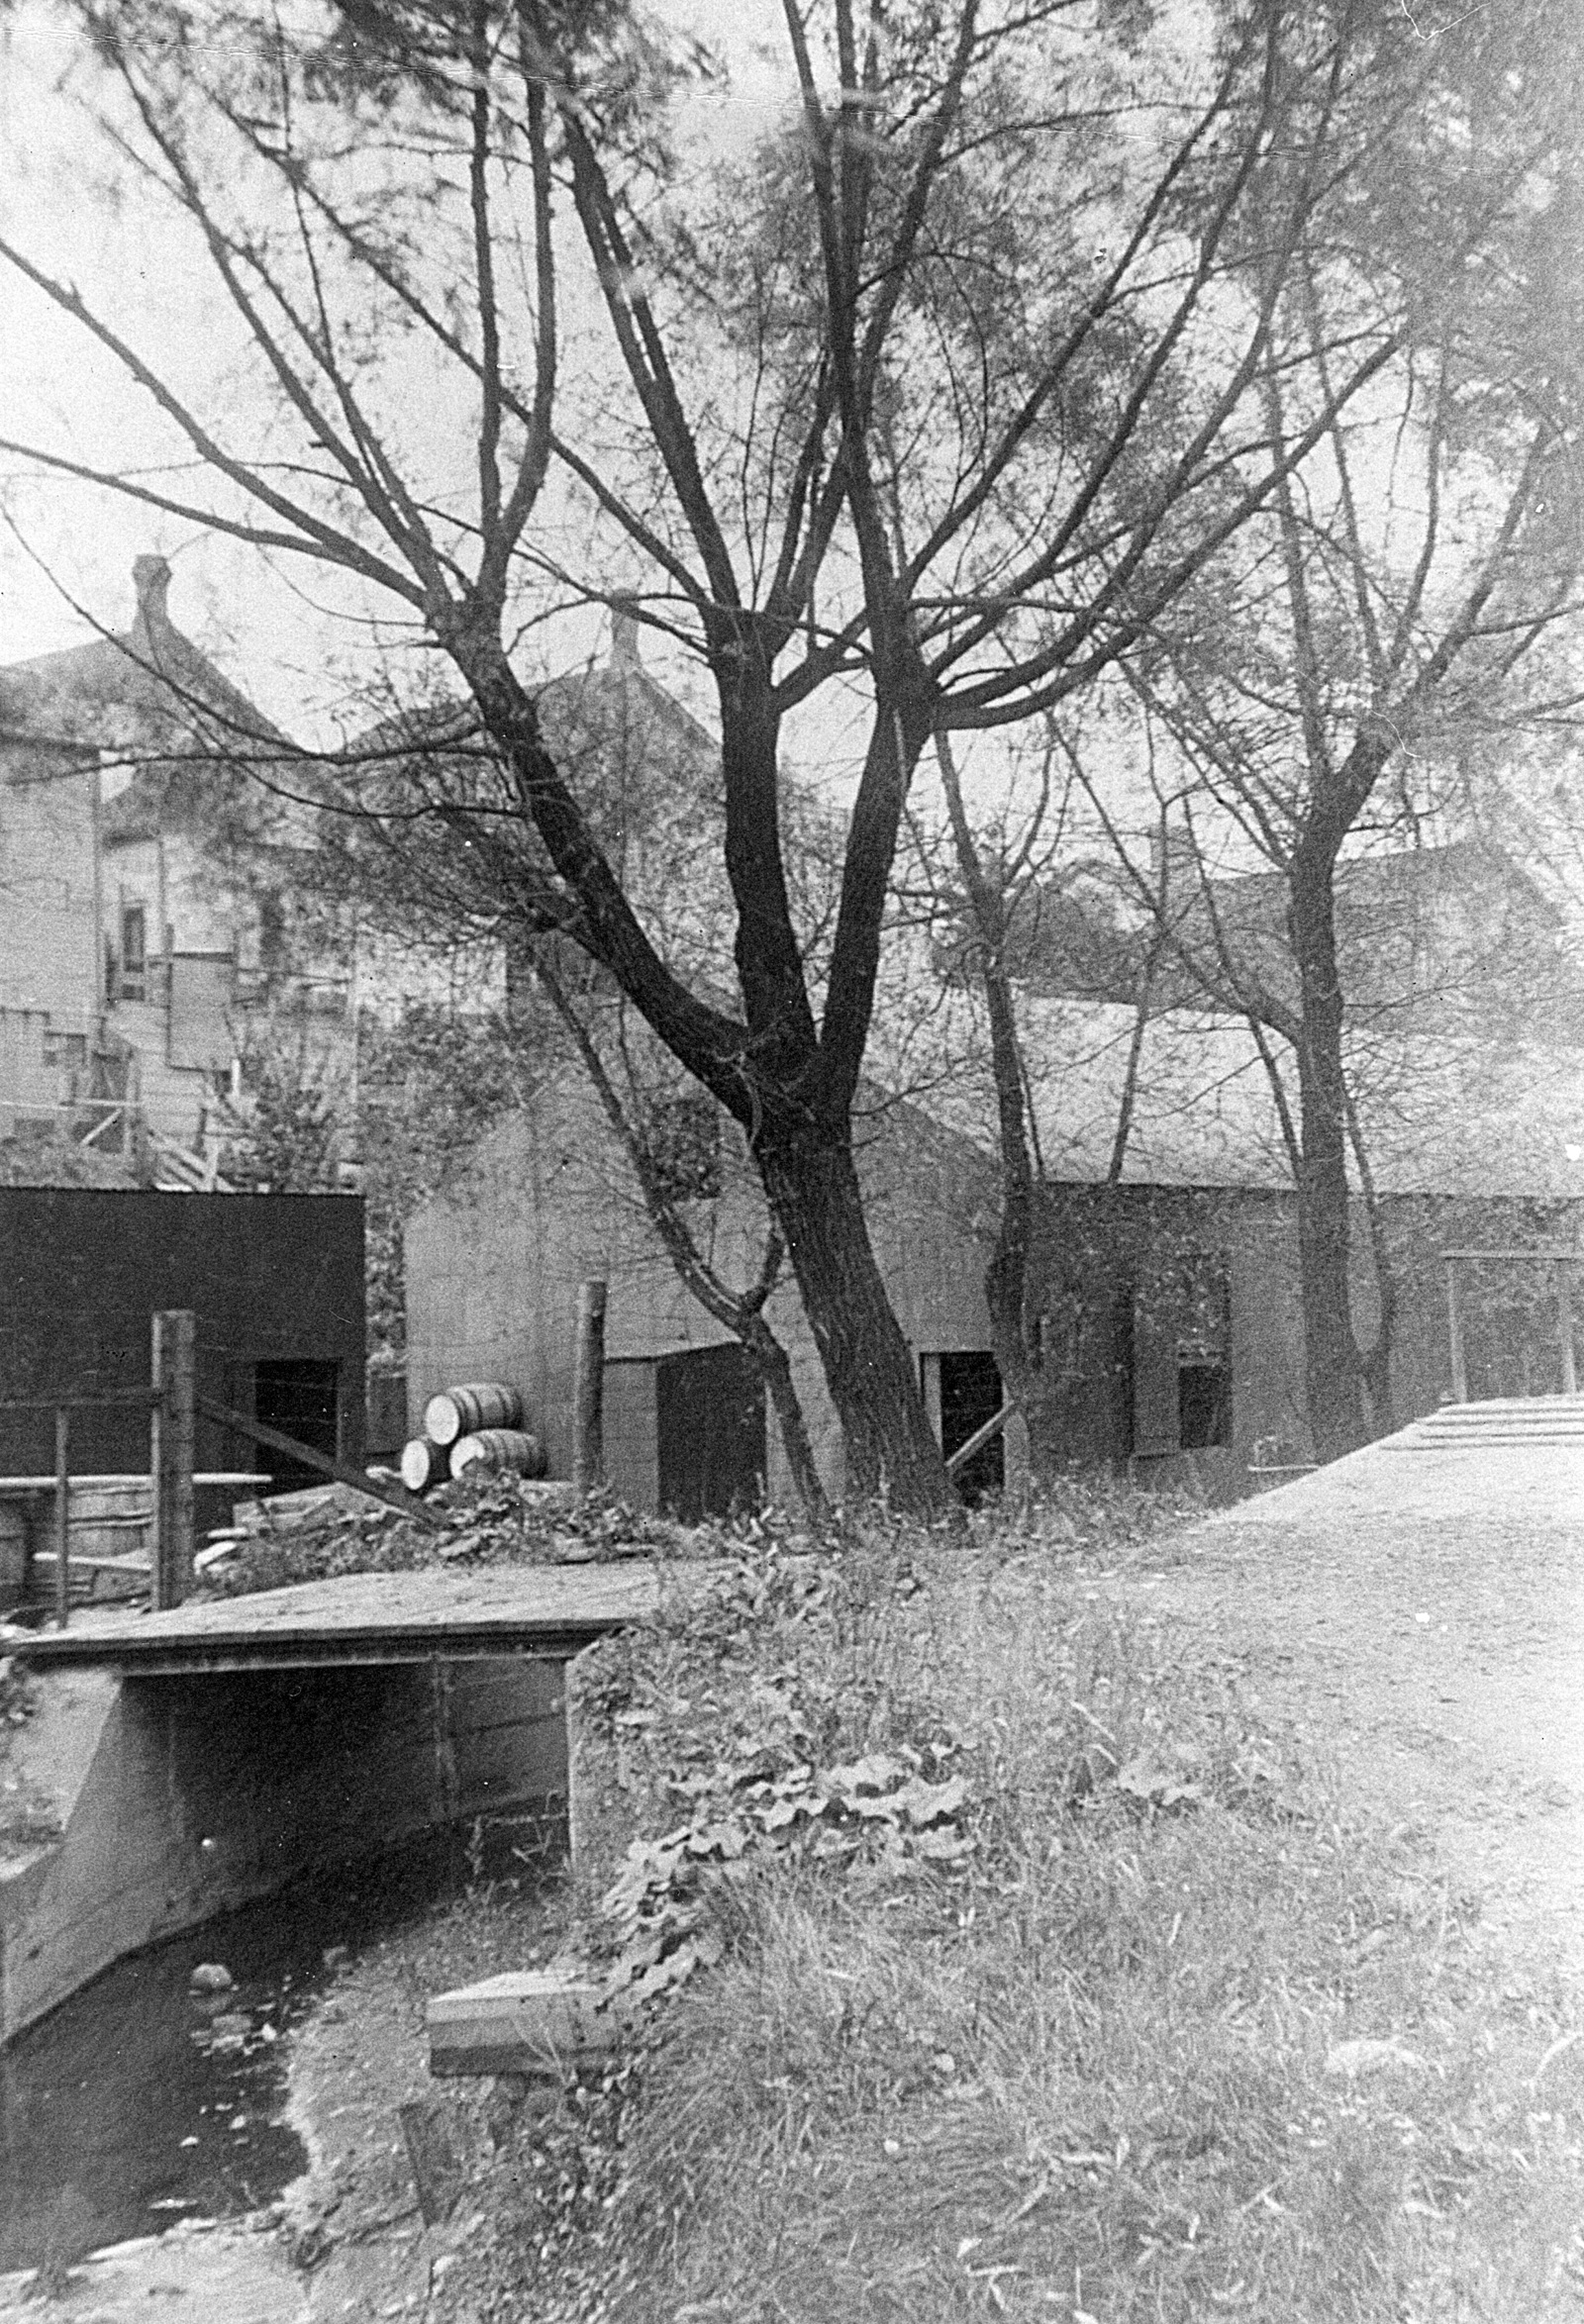 Allen's Creek near Dean and Company warehouse image